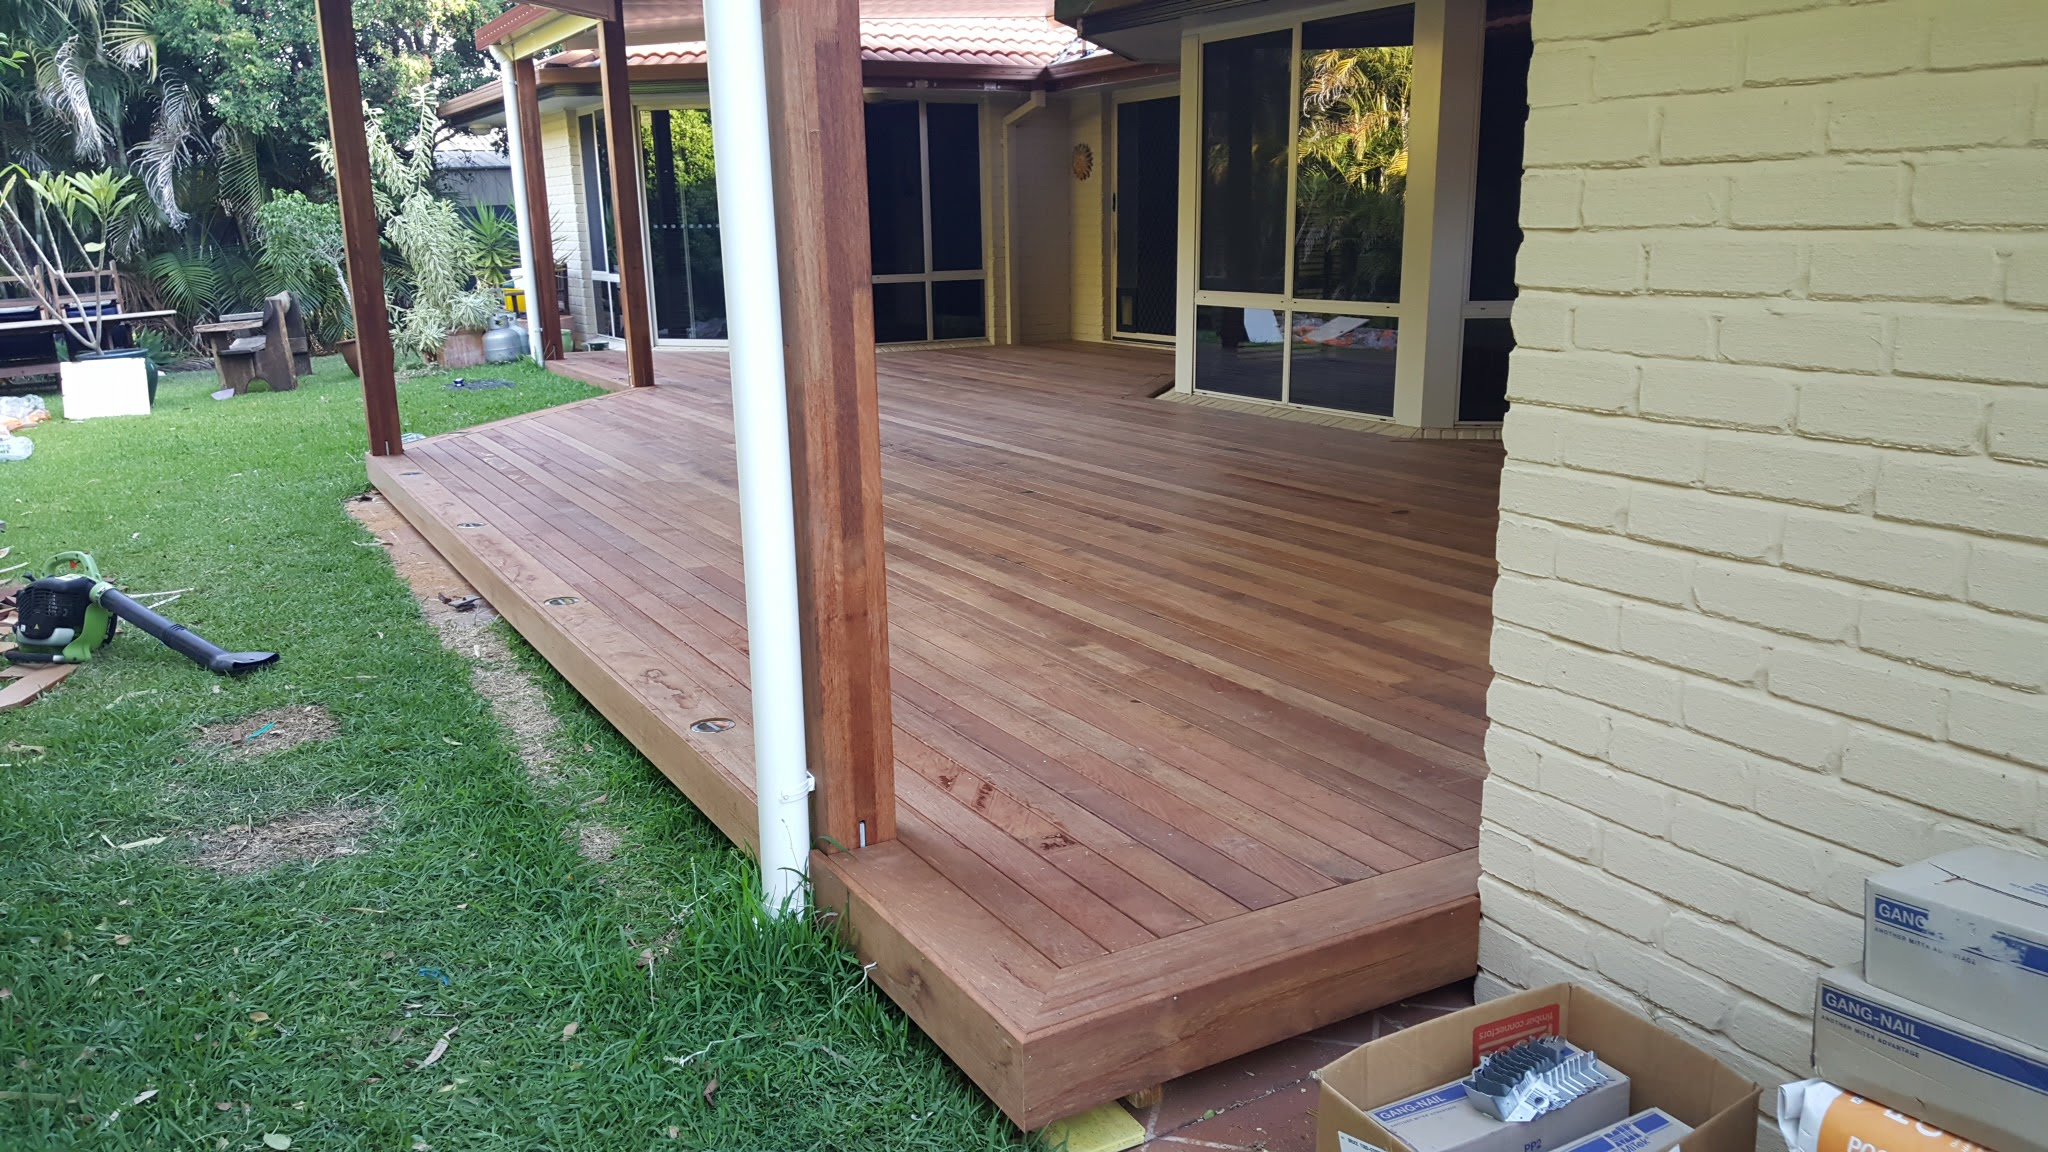 PICTURE FRAME DECK BRISBANE (2)